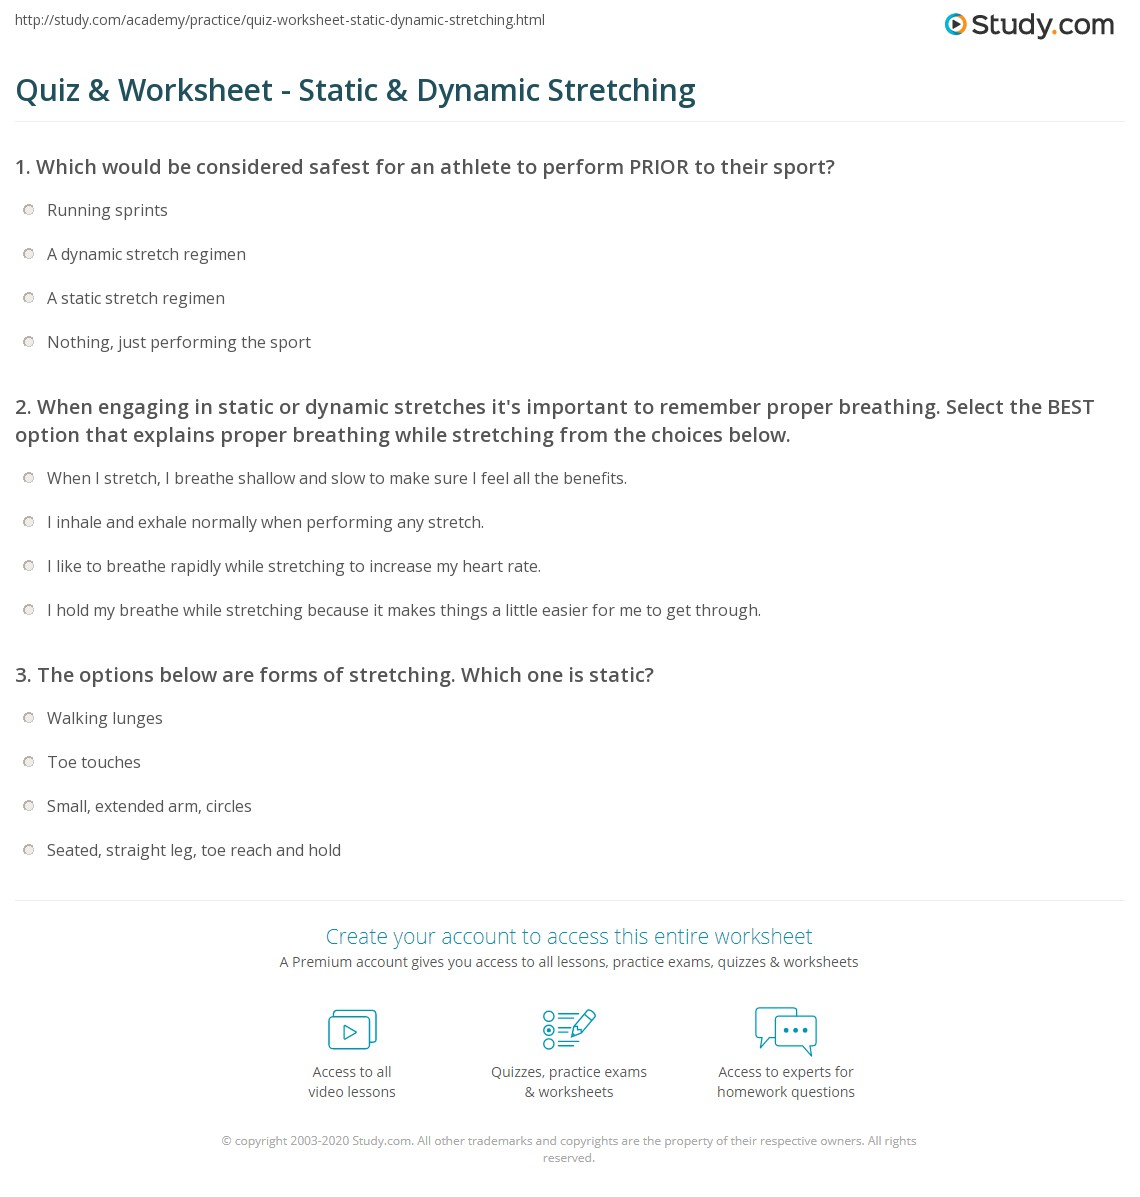 Quiz & Worksheet - Static & Dynamic Stretching | Study.com